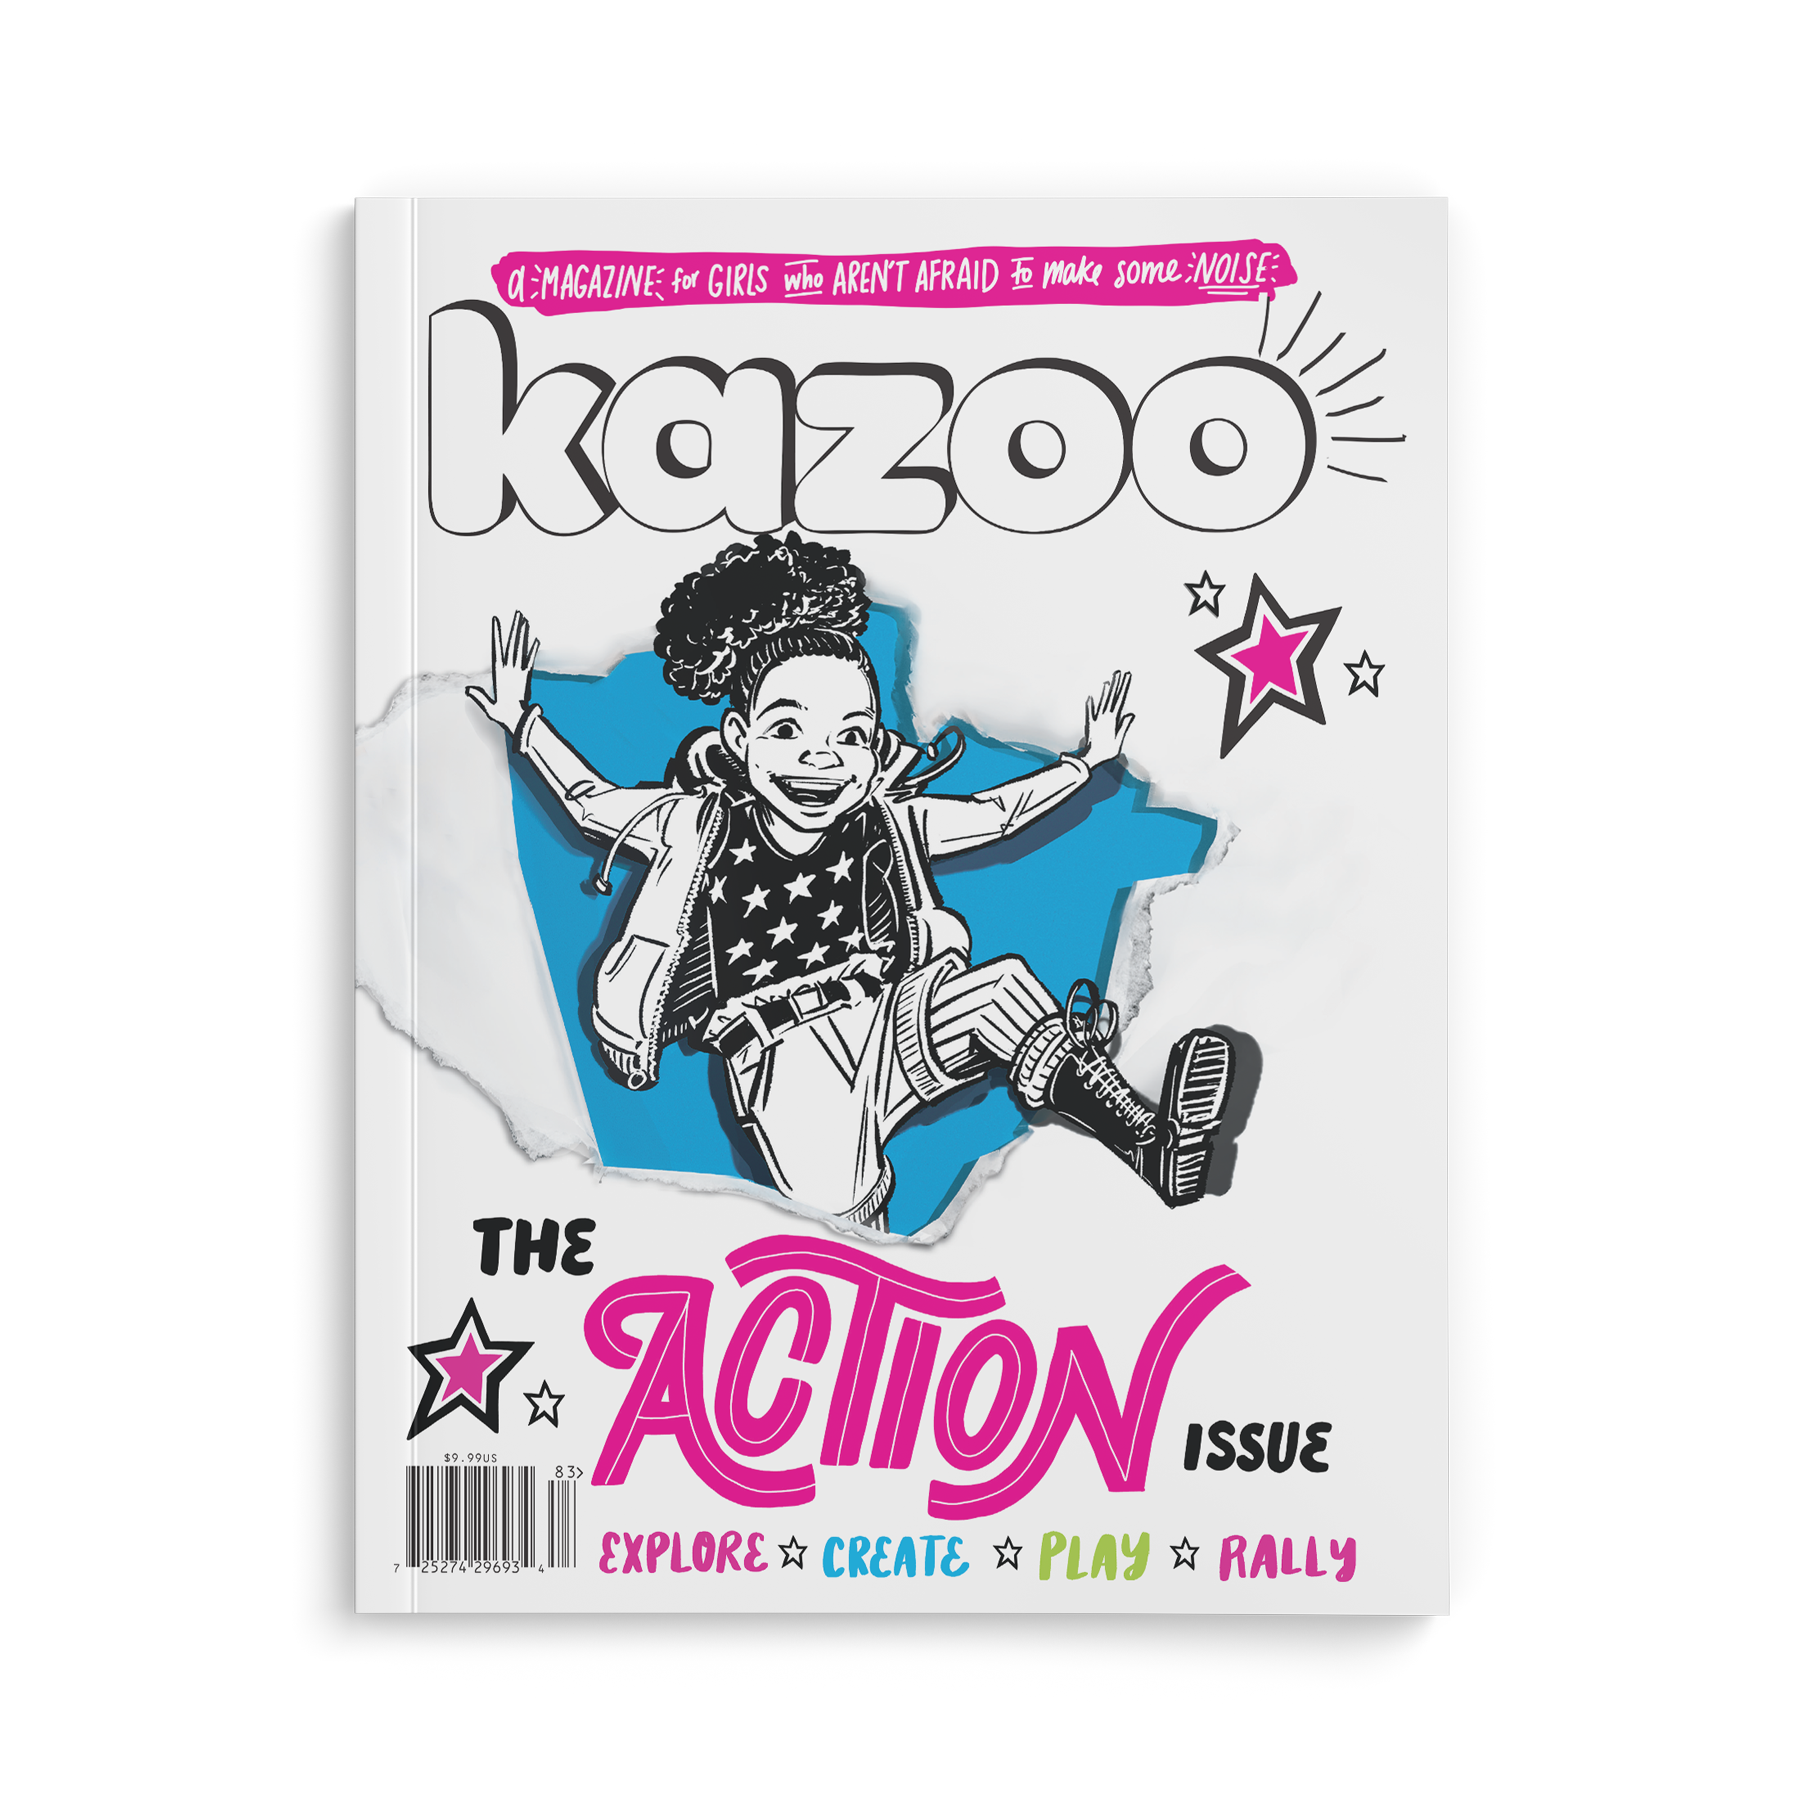 10: The Action Issue